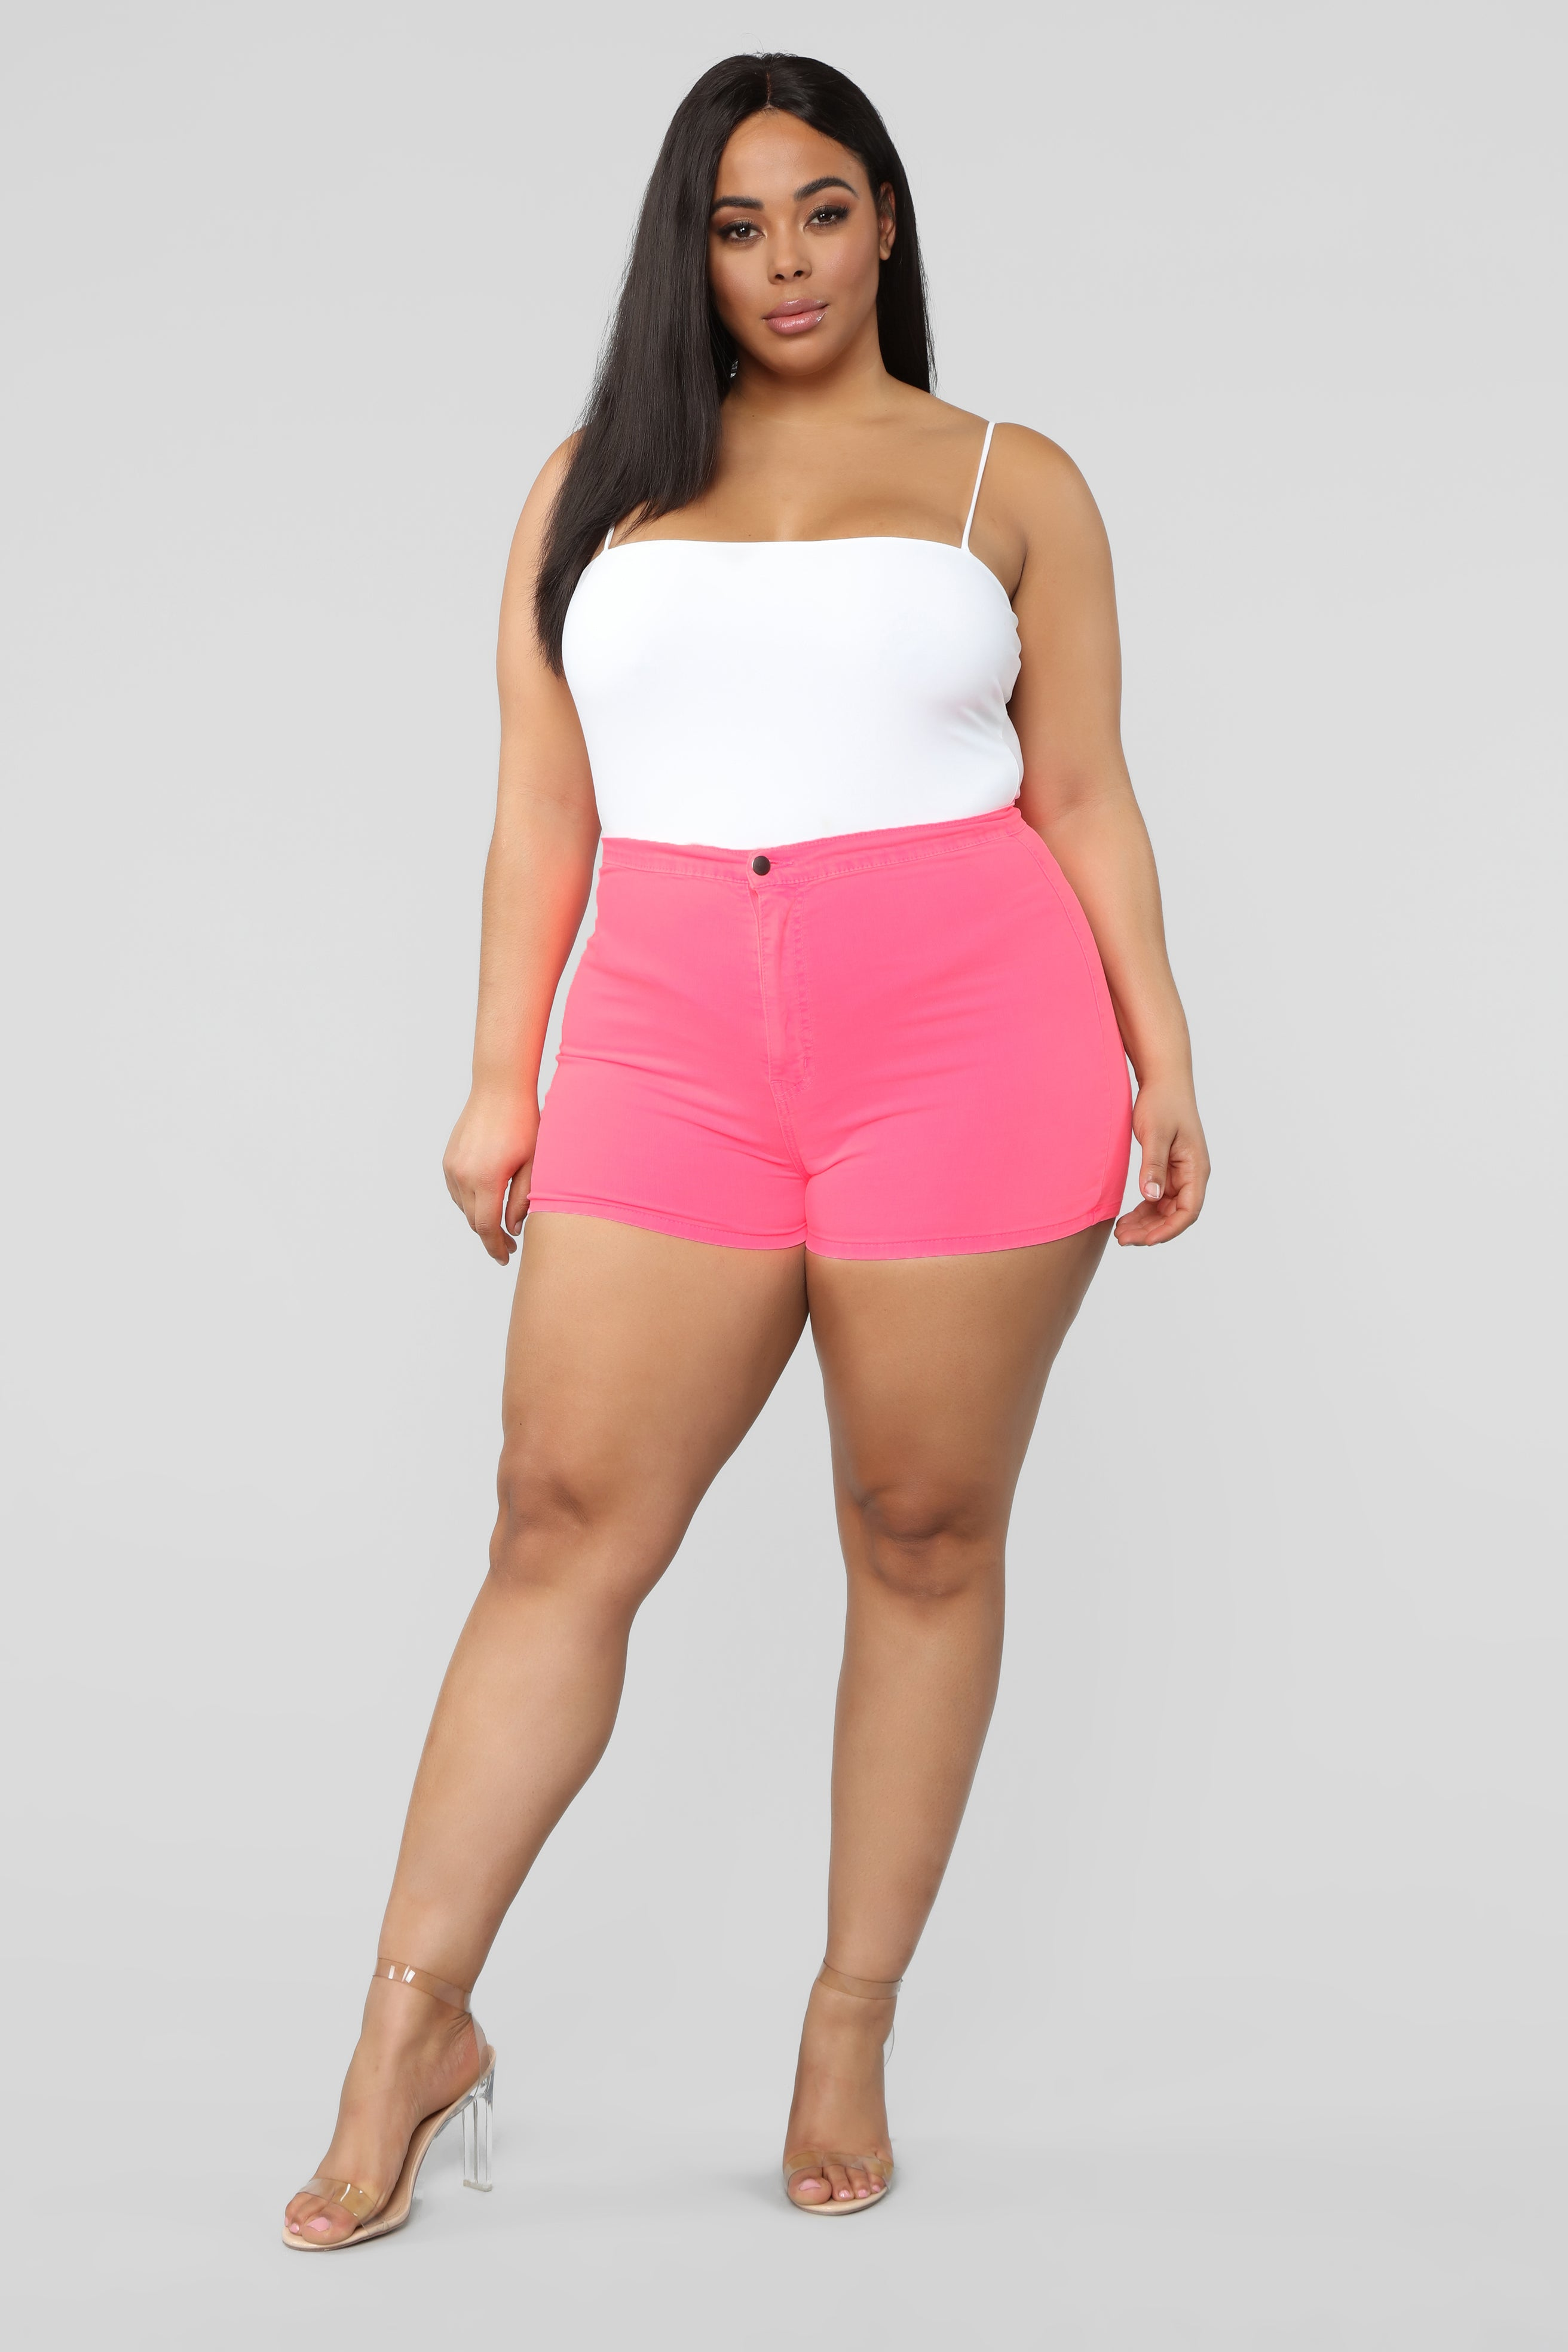 fd166296524 https   www.fashionnova.com products side-by-side-top-white 2019-04 ...